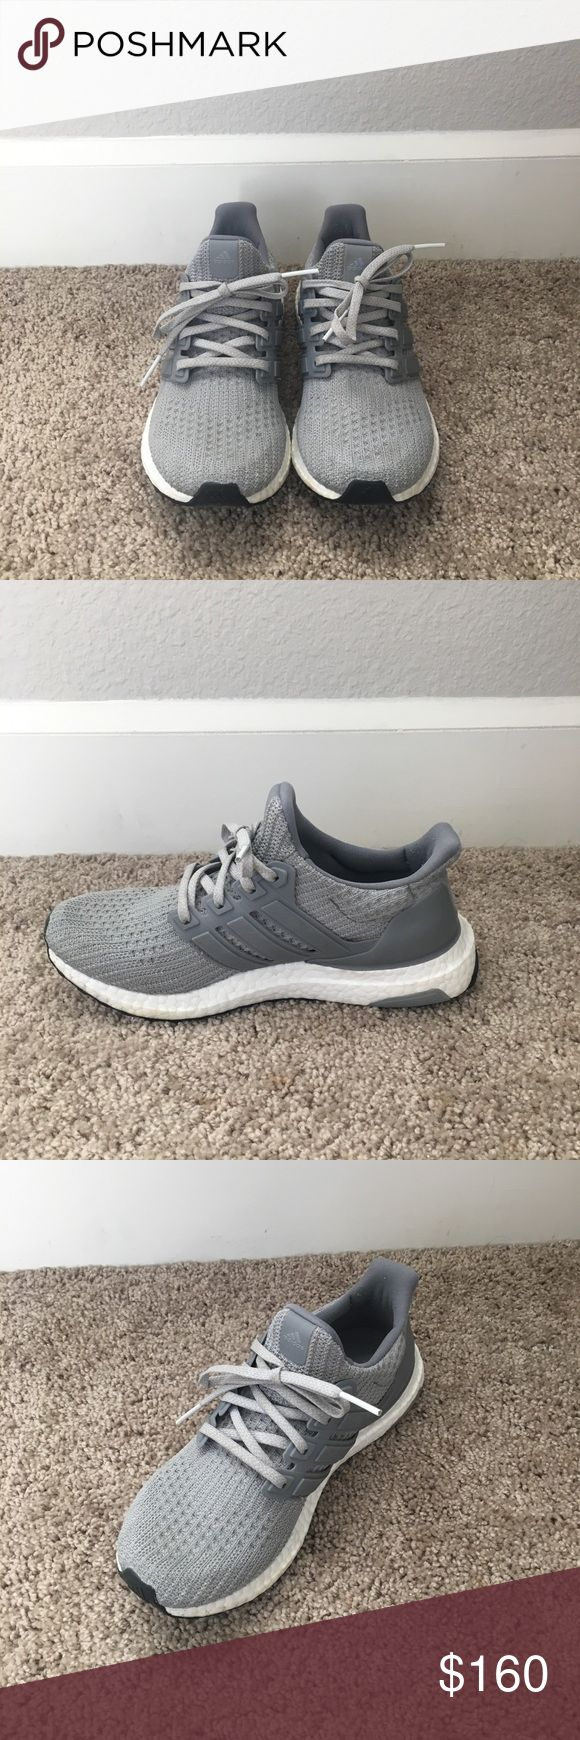 Gray adidas ultra boost shoes // women's running basically brand new  barely worn NO wear and tear at all  no scuffs or marks  very stylish  grey athletic / running shoes  very comfortable great for both working out and casual daily wear adidas Shoes Athletic Shoes